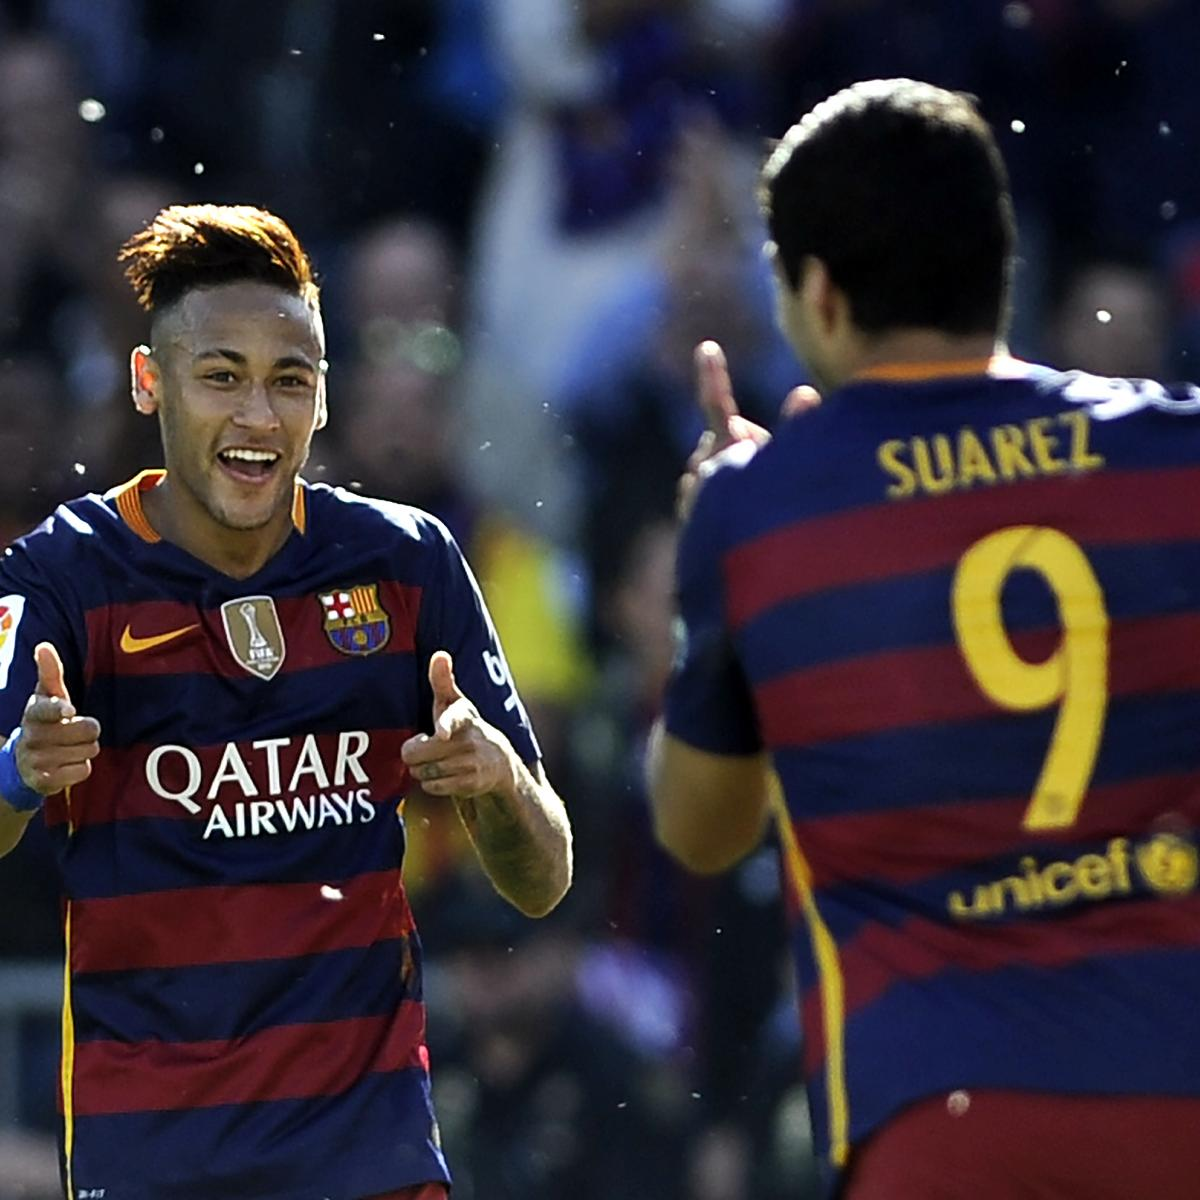 La liga table 2016 latest standings following week 38 results bleacher report - La liga latest results and table ...